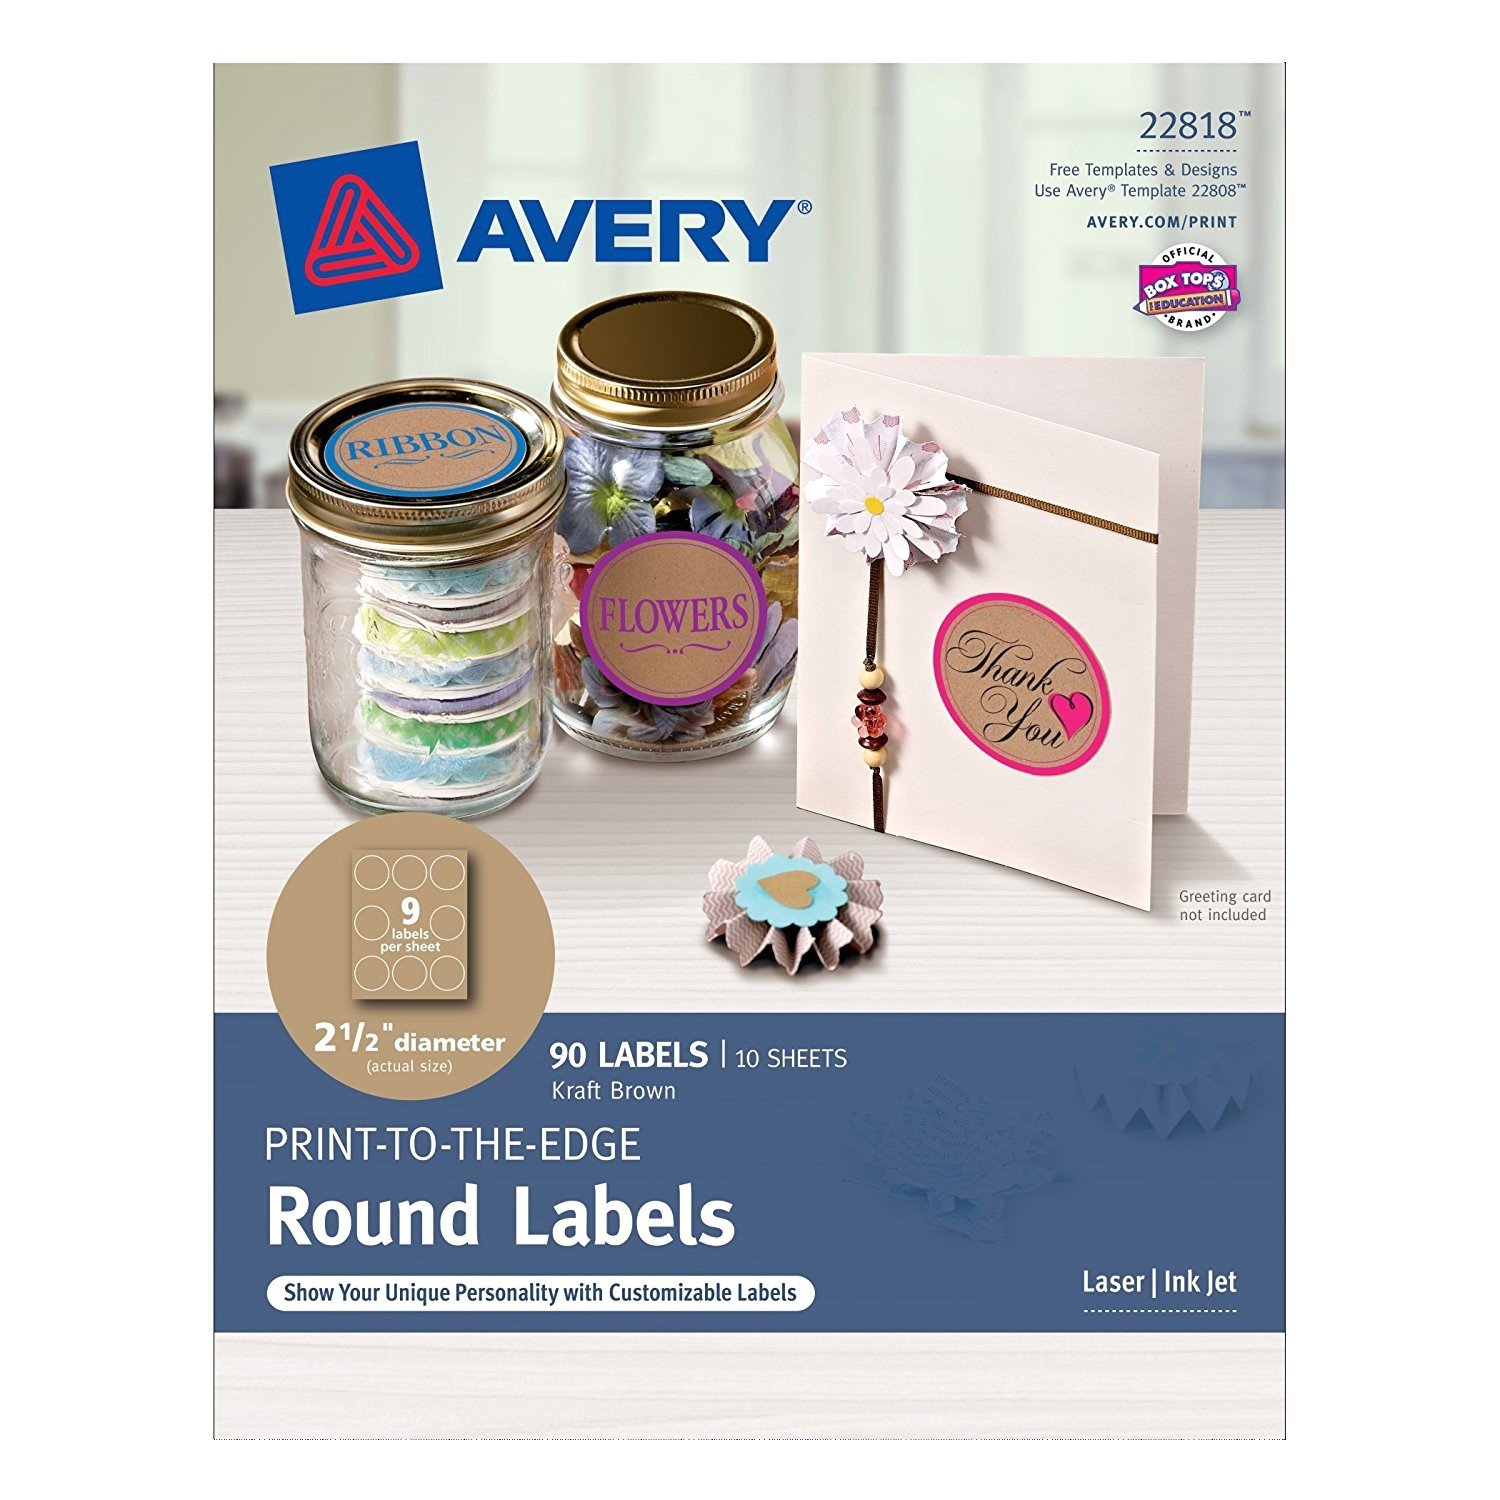 Avery Canning Jar Label Template Avery Canning Jar Label Template Il 570xn 1332248073 79g1